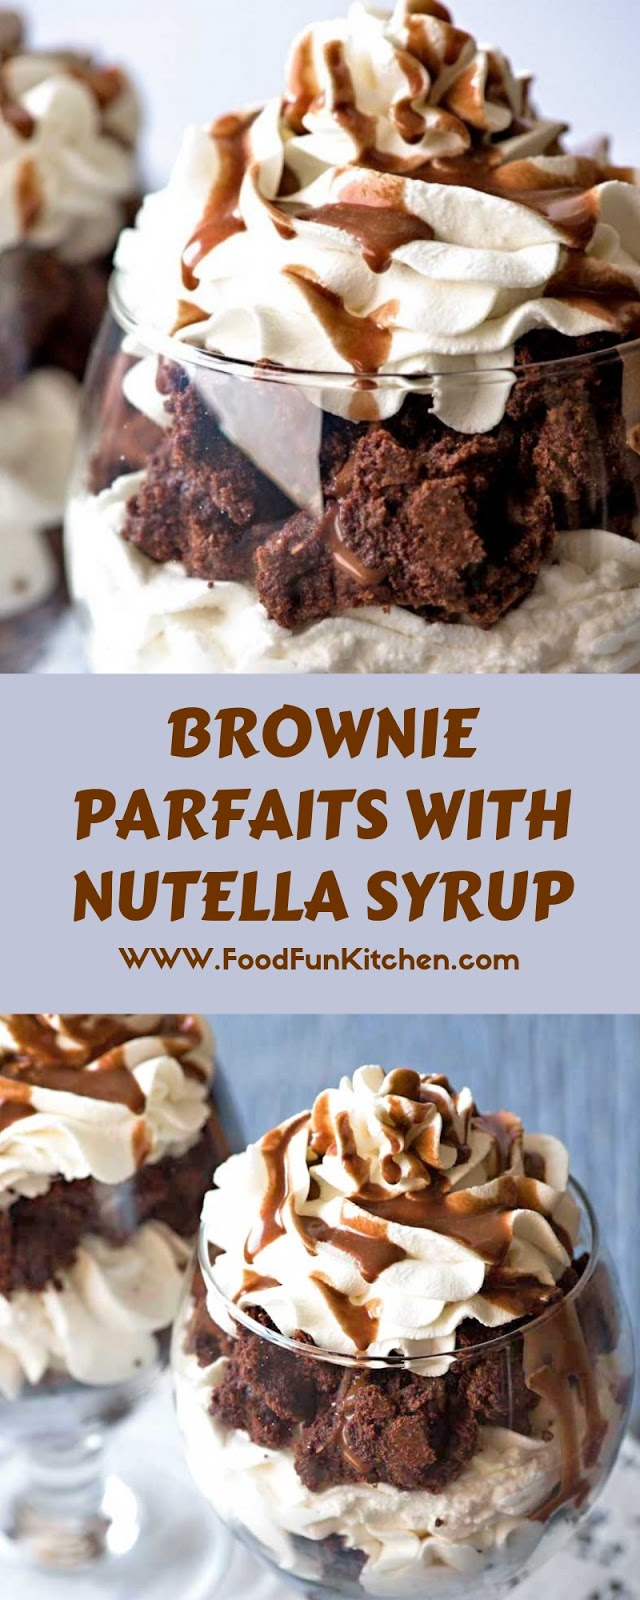 BROWNIE PARFAITS WITH NUTELLA SYRUP